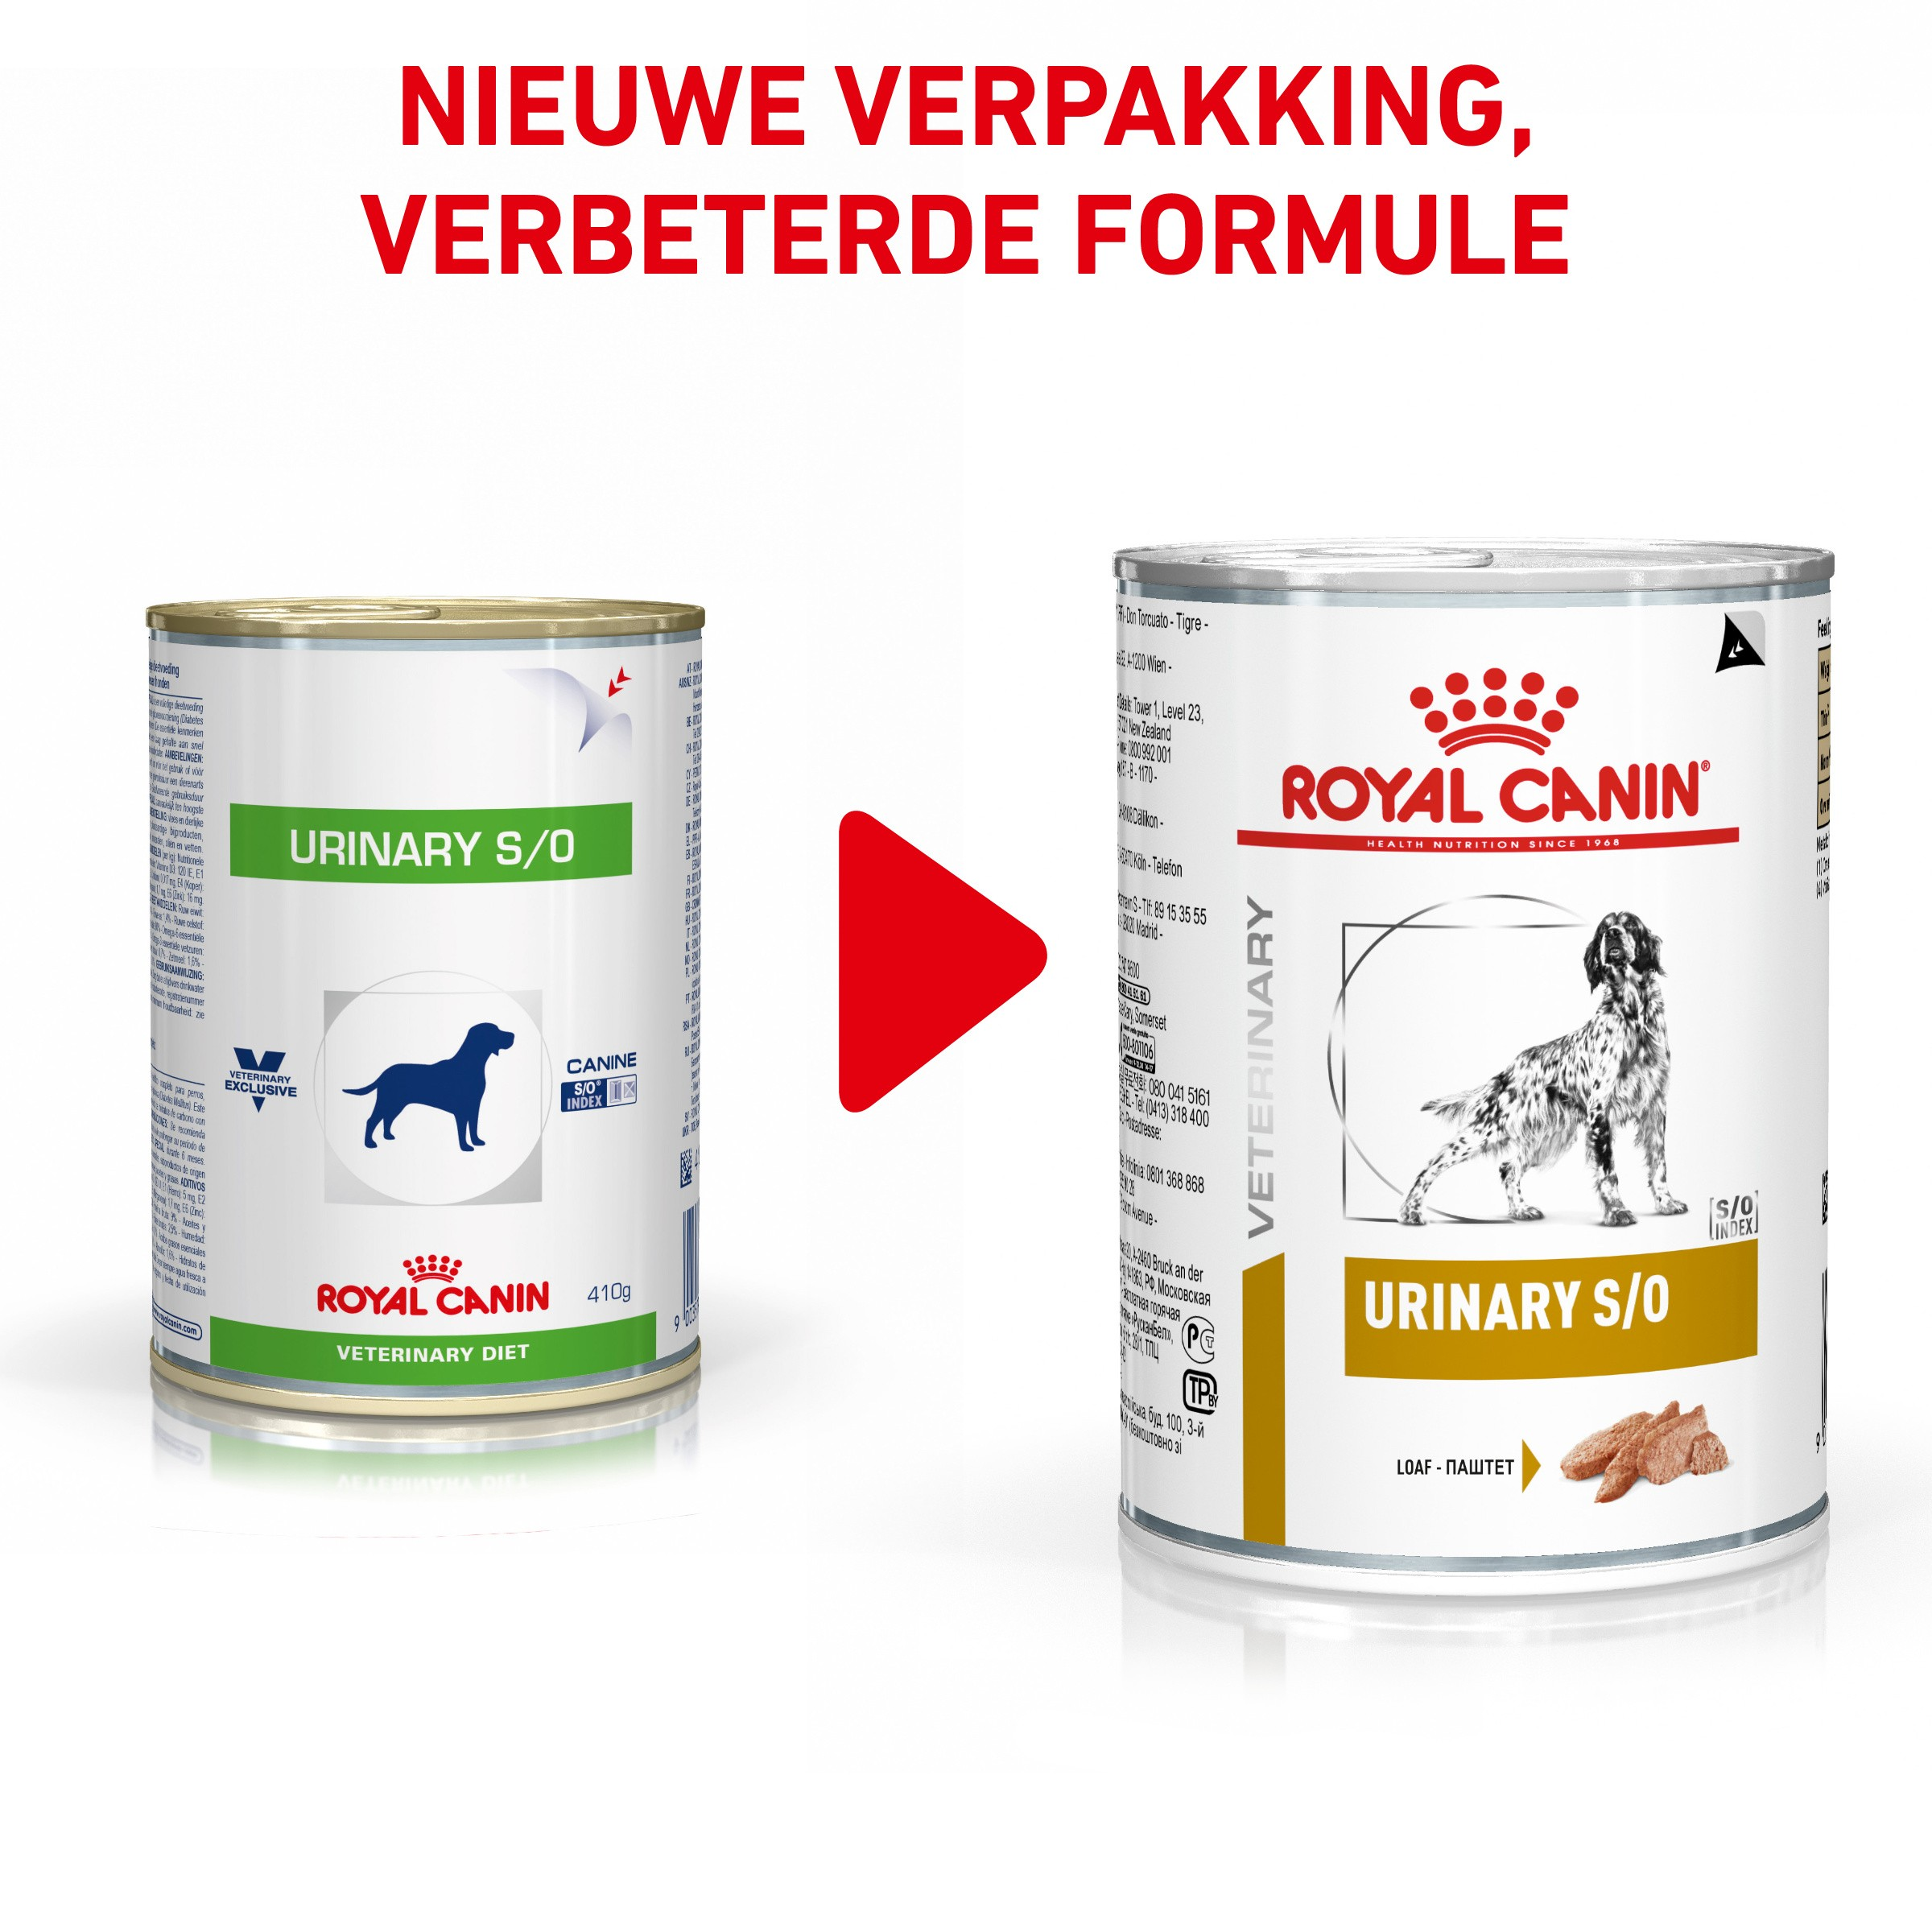 Royal Canin Veterinary Urinary S/O 410 g blik hondenvoer